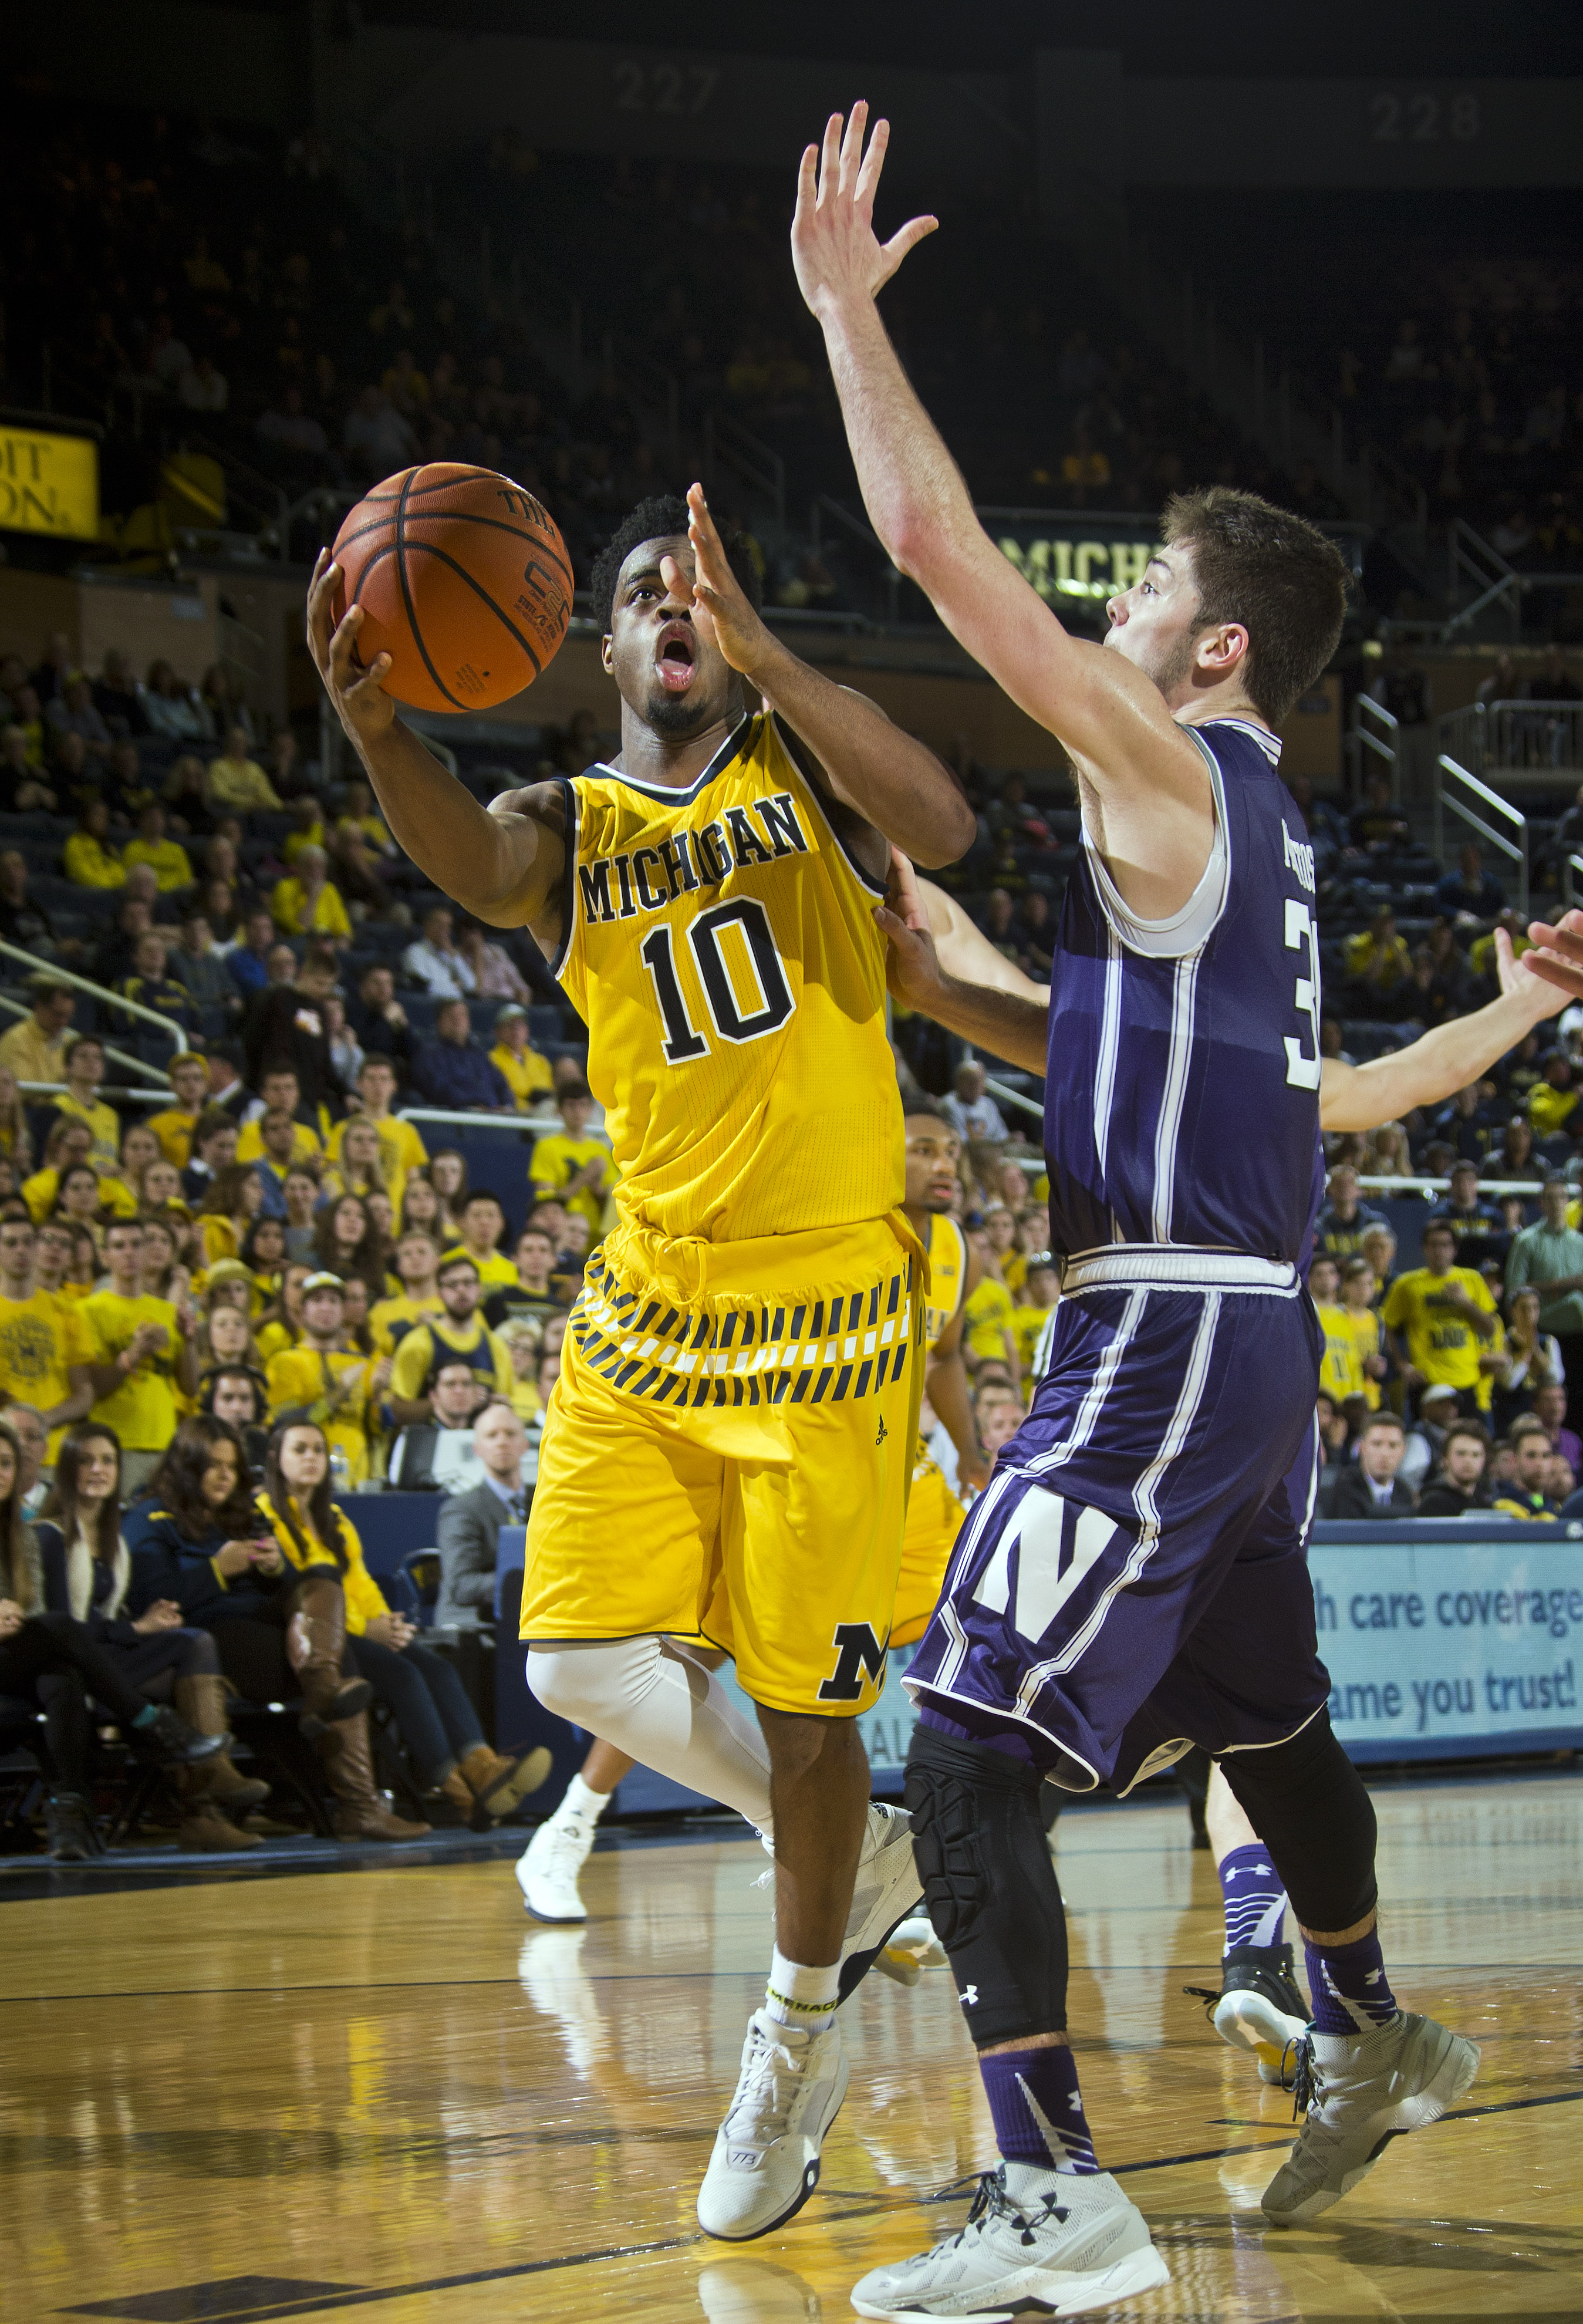 Michigan guard Derrick Walton Jr. (10) tries to go to the basket, defended by Northwestern guard Bryant McIntosh, right, in the second half of an NCAA college basketball game at Crisler Center in Ann Arbor, Mich., Wednesday, Feb. 24, 2016. Michigan won 72